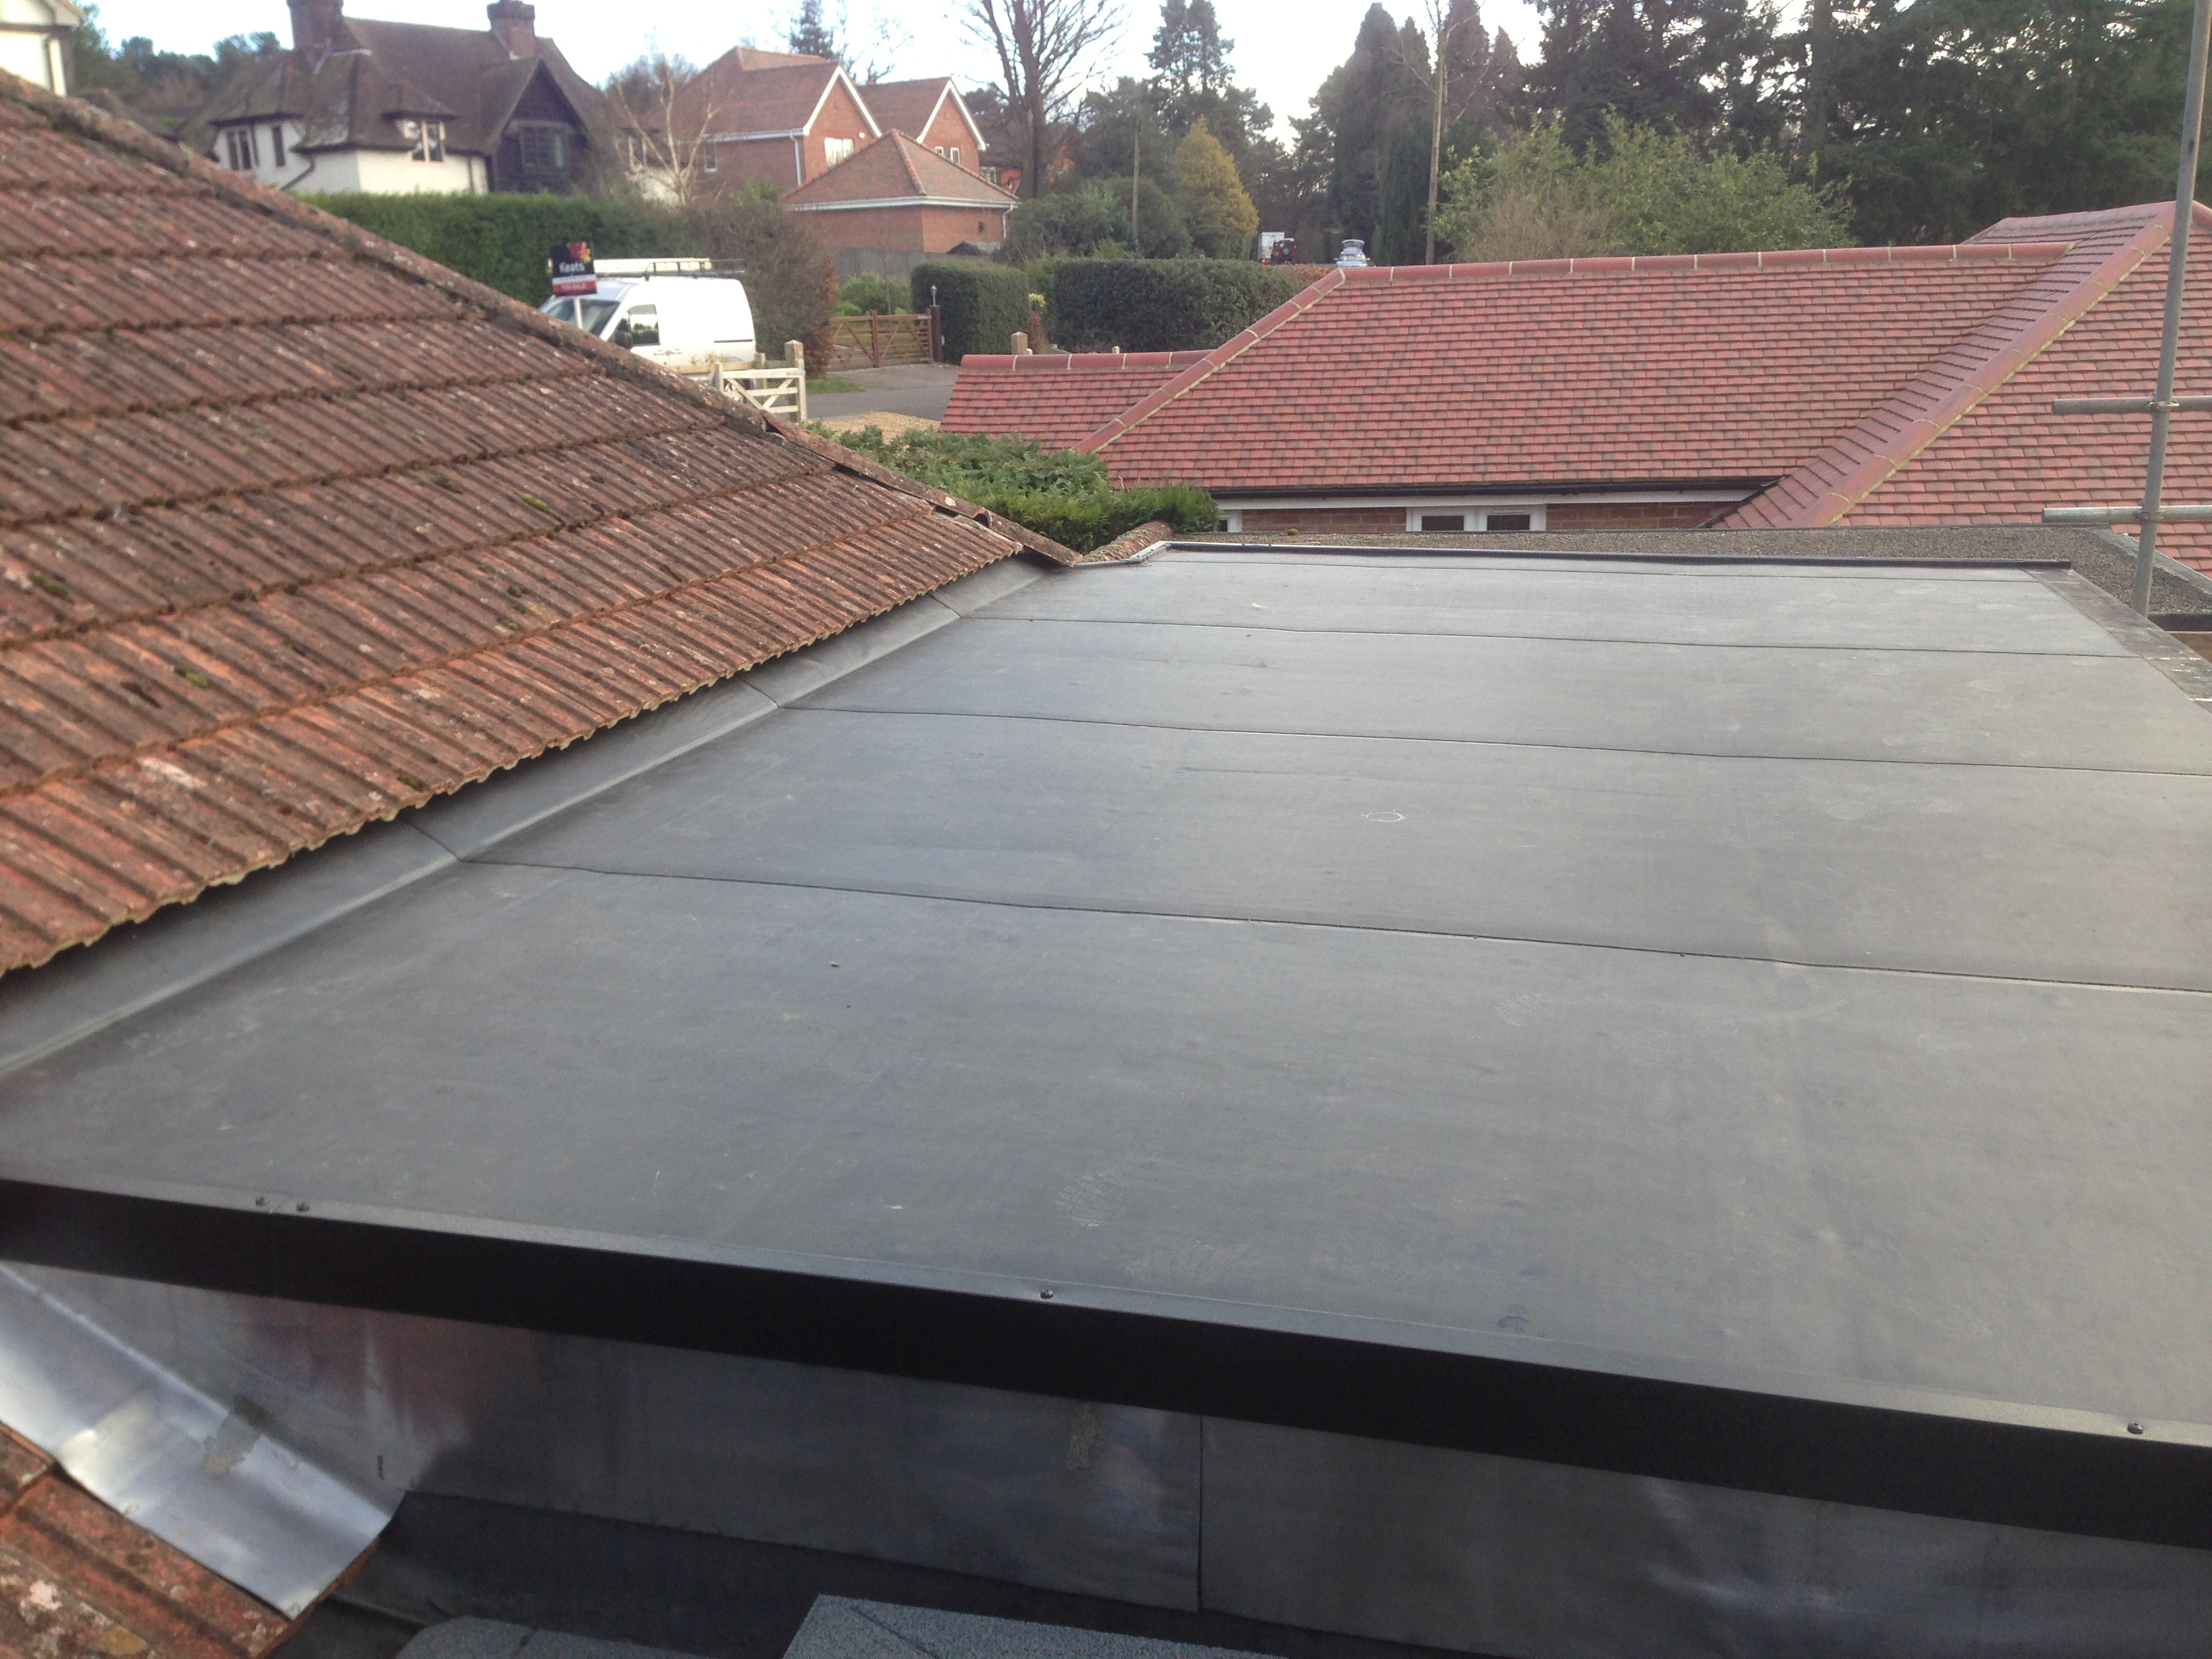 Charming Advantages And Disadvantages Of Using Rubber Roofing Materials